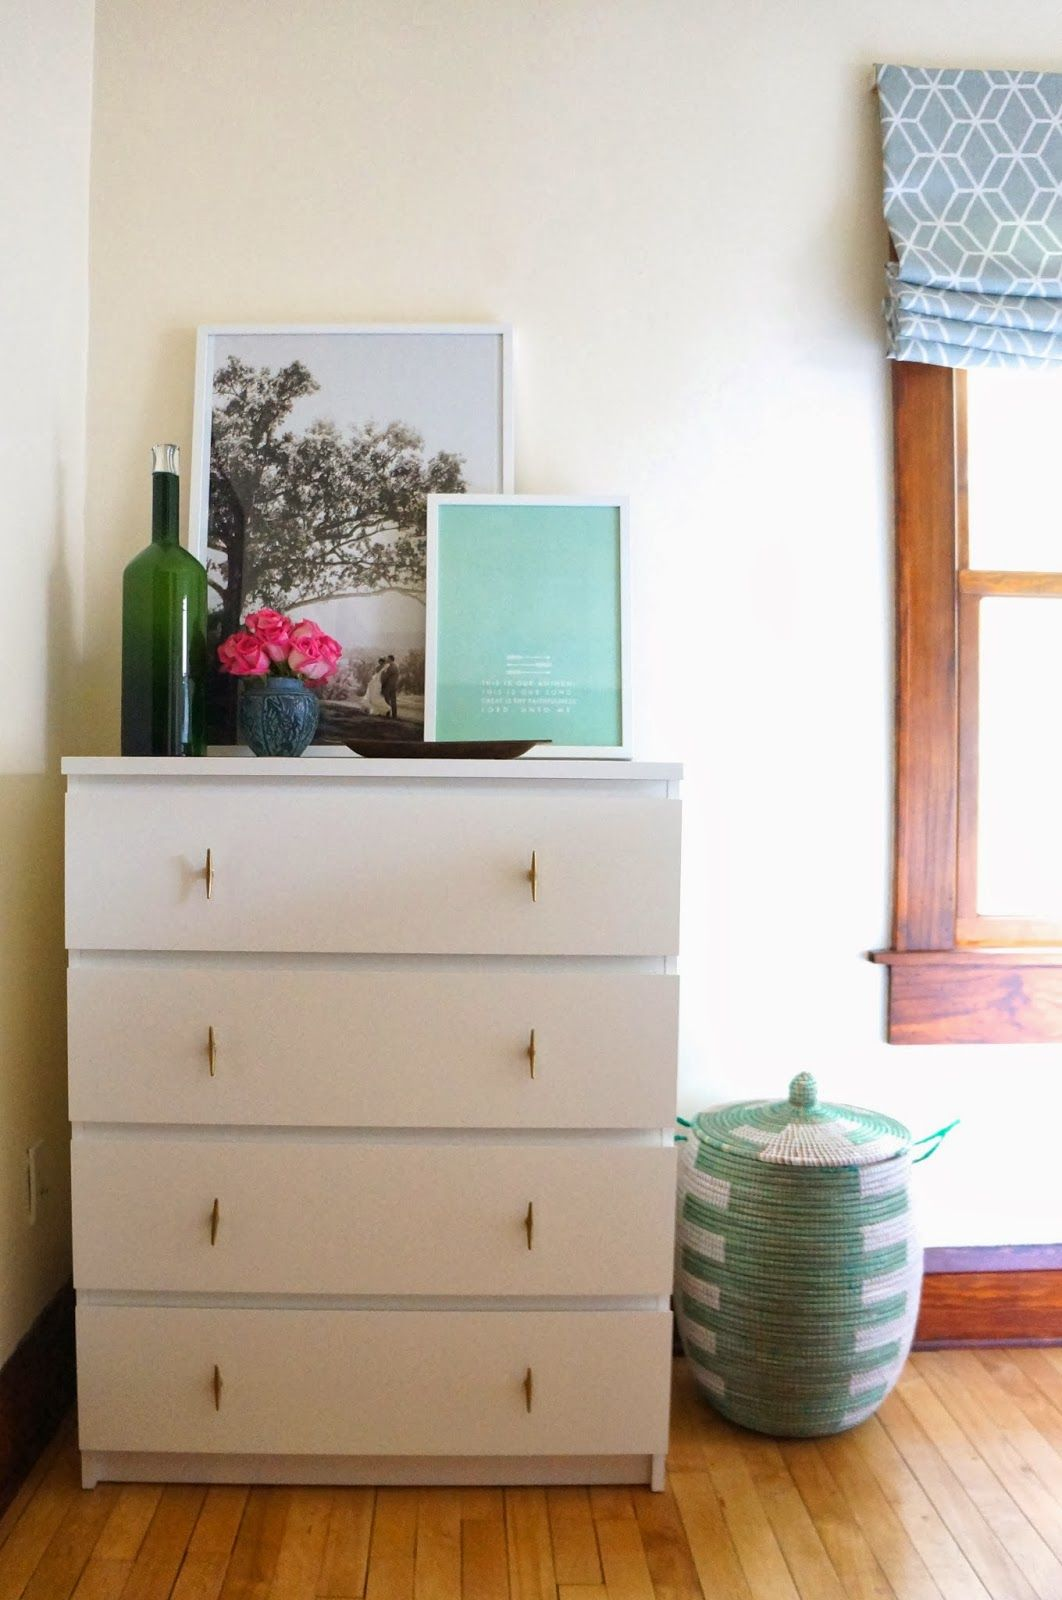 ikea malm dresser diy ideas - hacks for ikea malm dresser